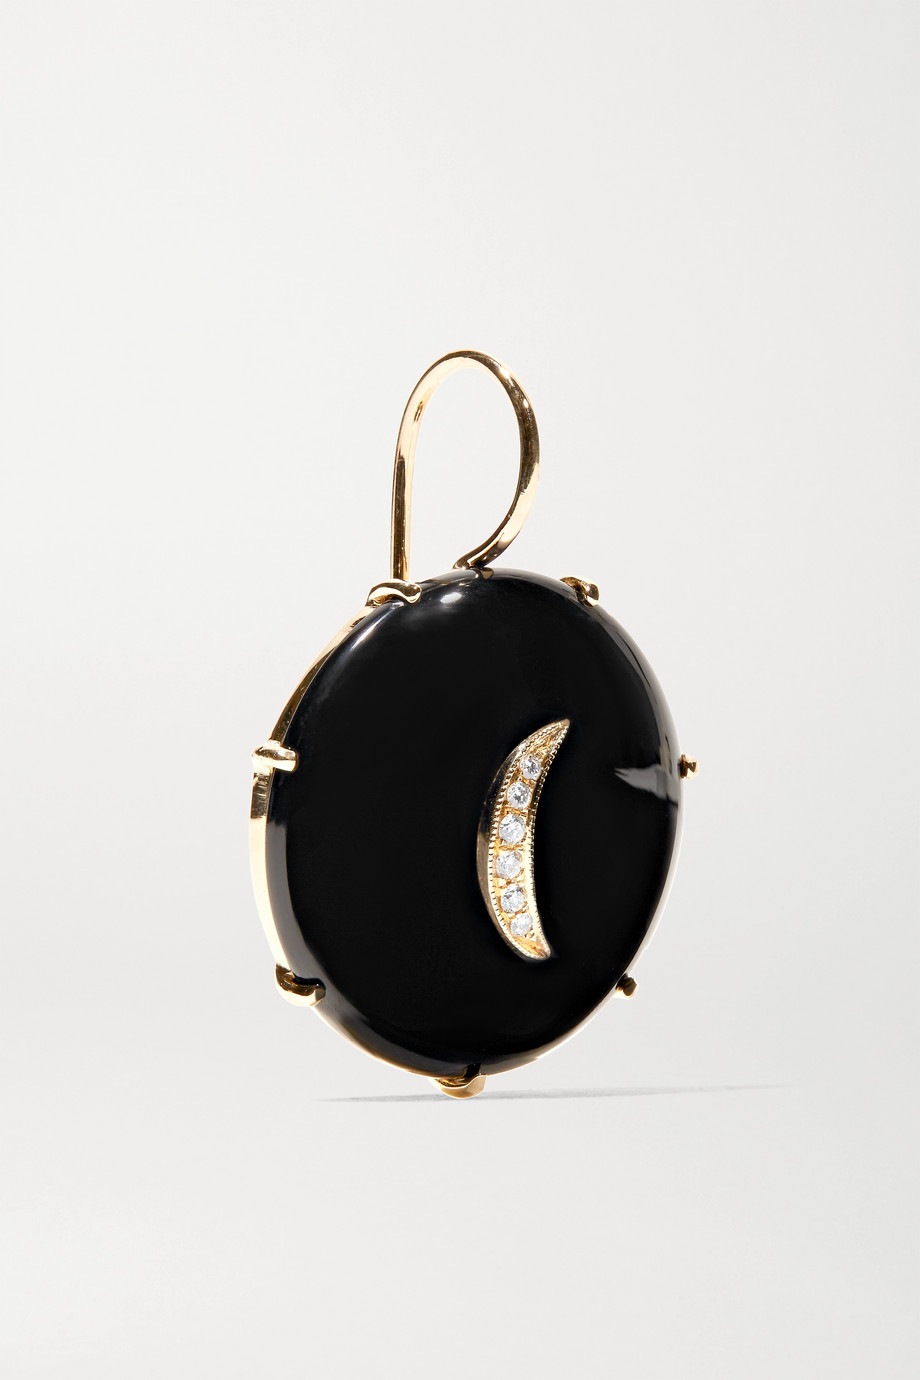 Andrea Fohrman 14-karat gold, onyx and diamond earrings